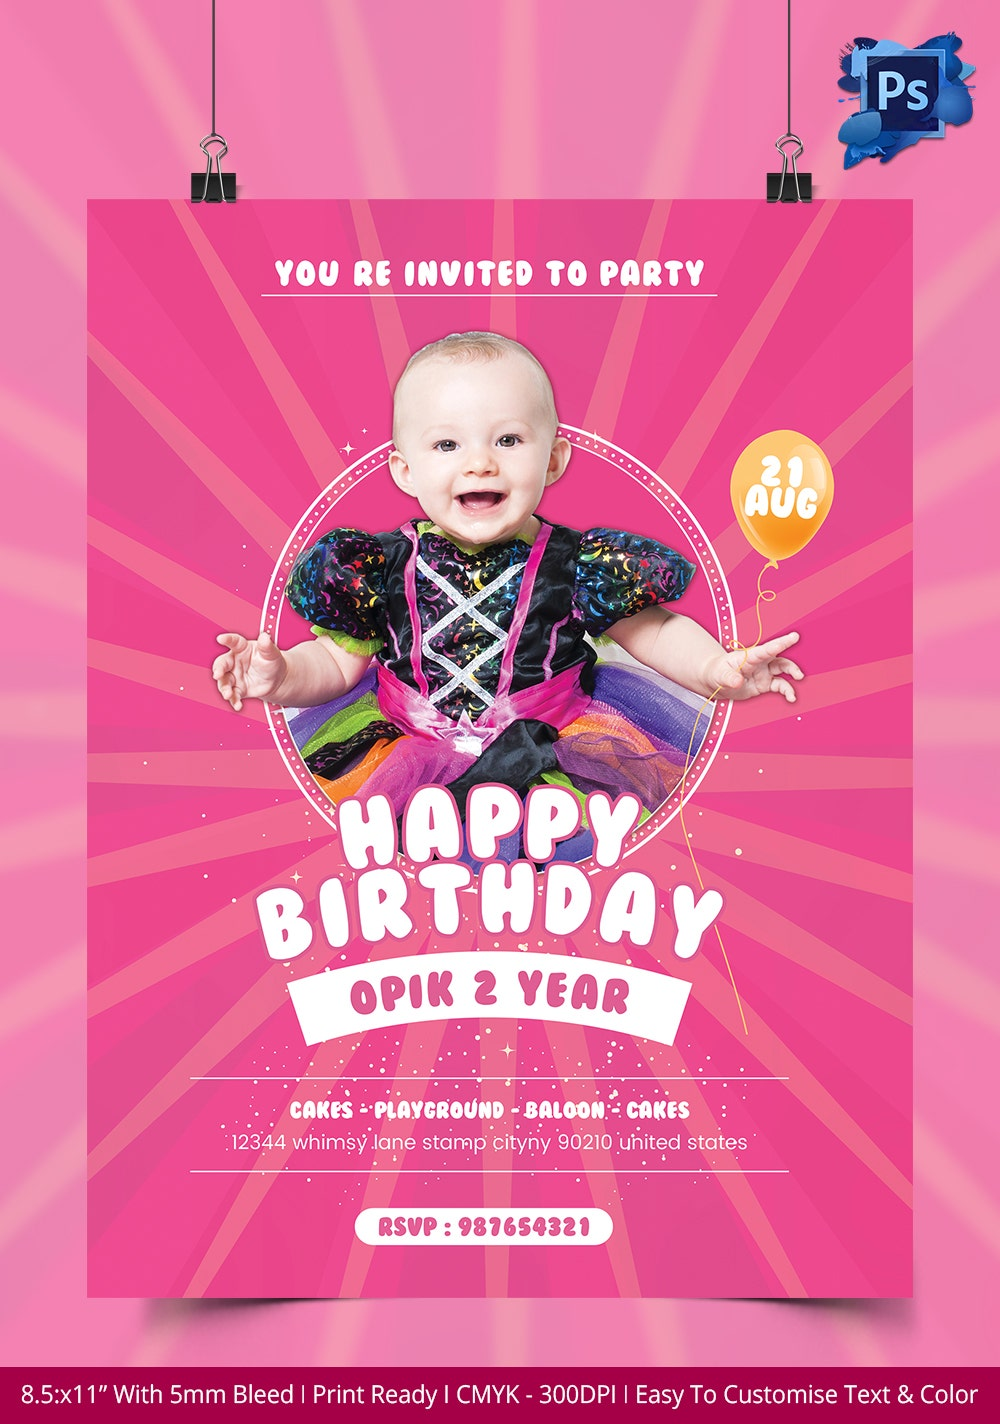 birthday flyer template 31 psd ai vector eps format birthday party invitation flyer